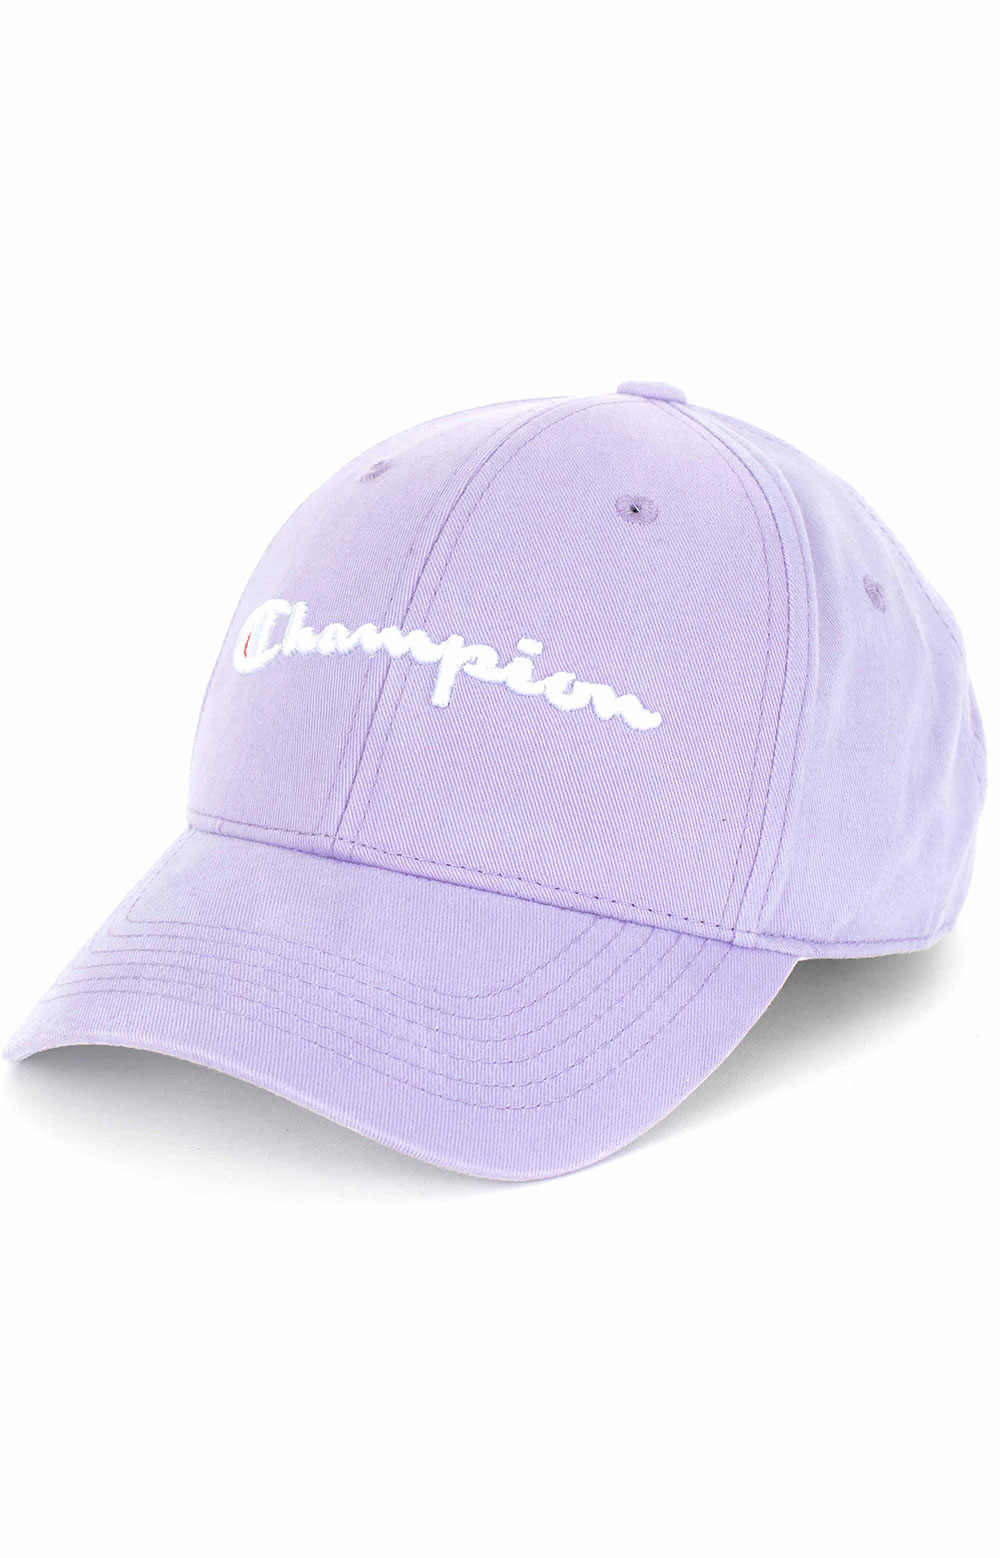 Classic Twill Hat - Pale Violet Rose